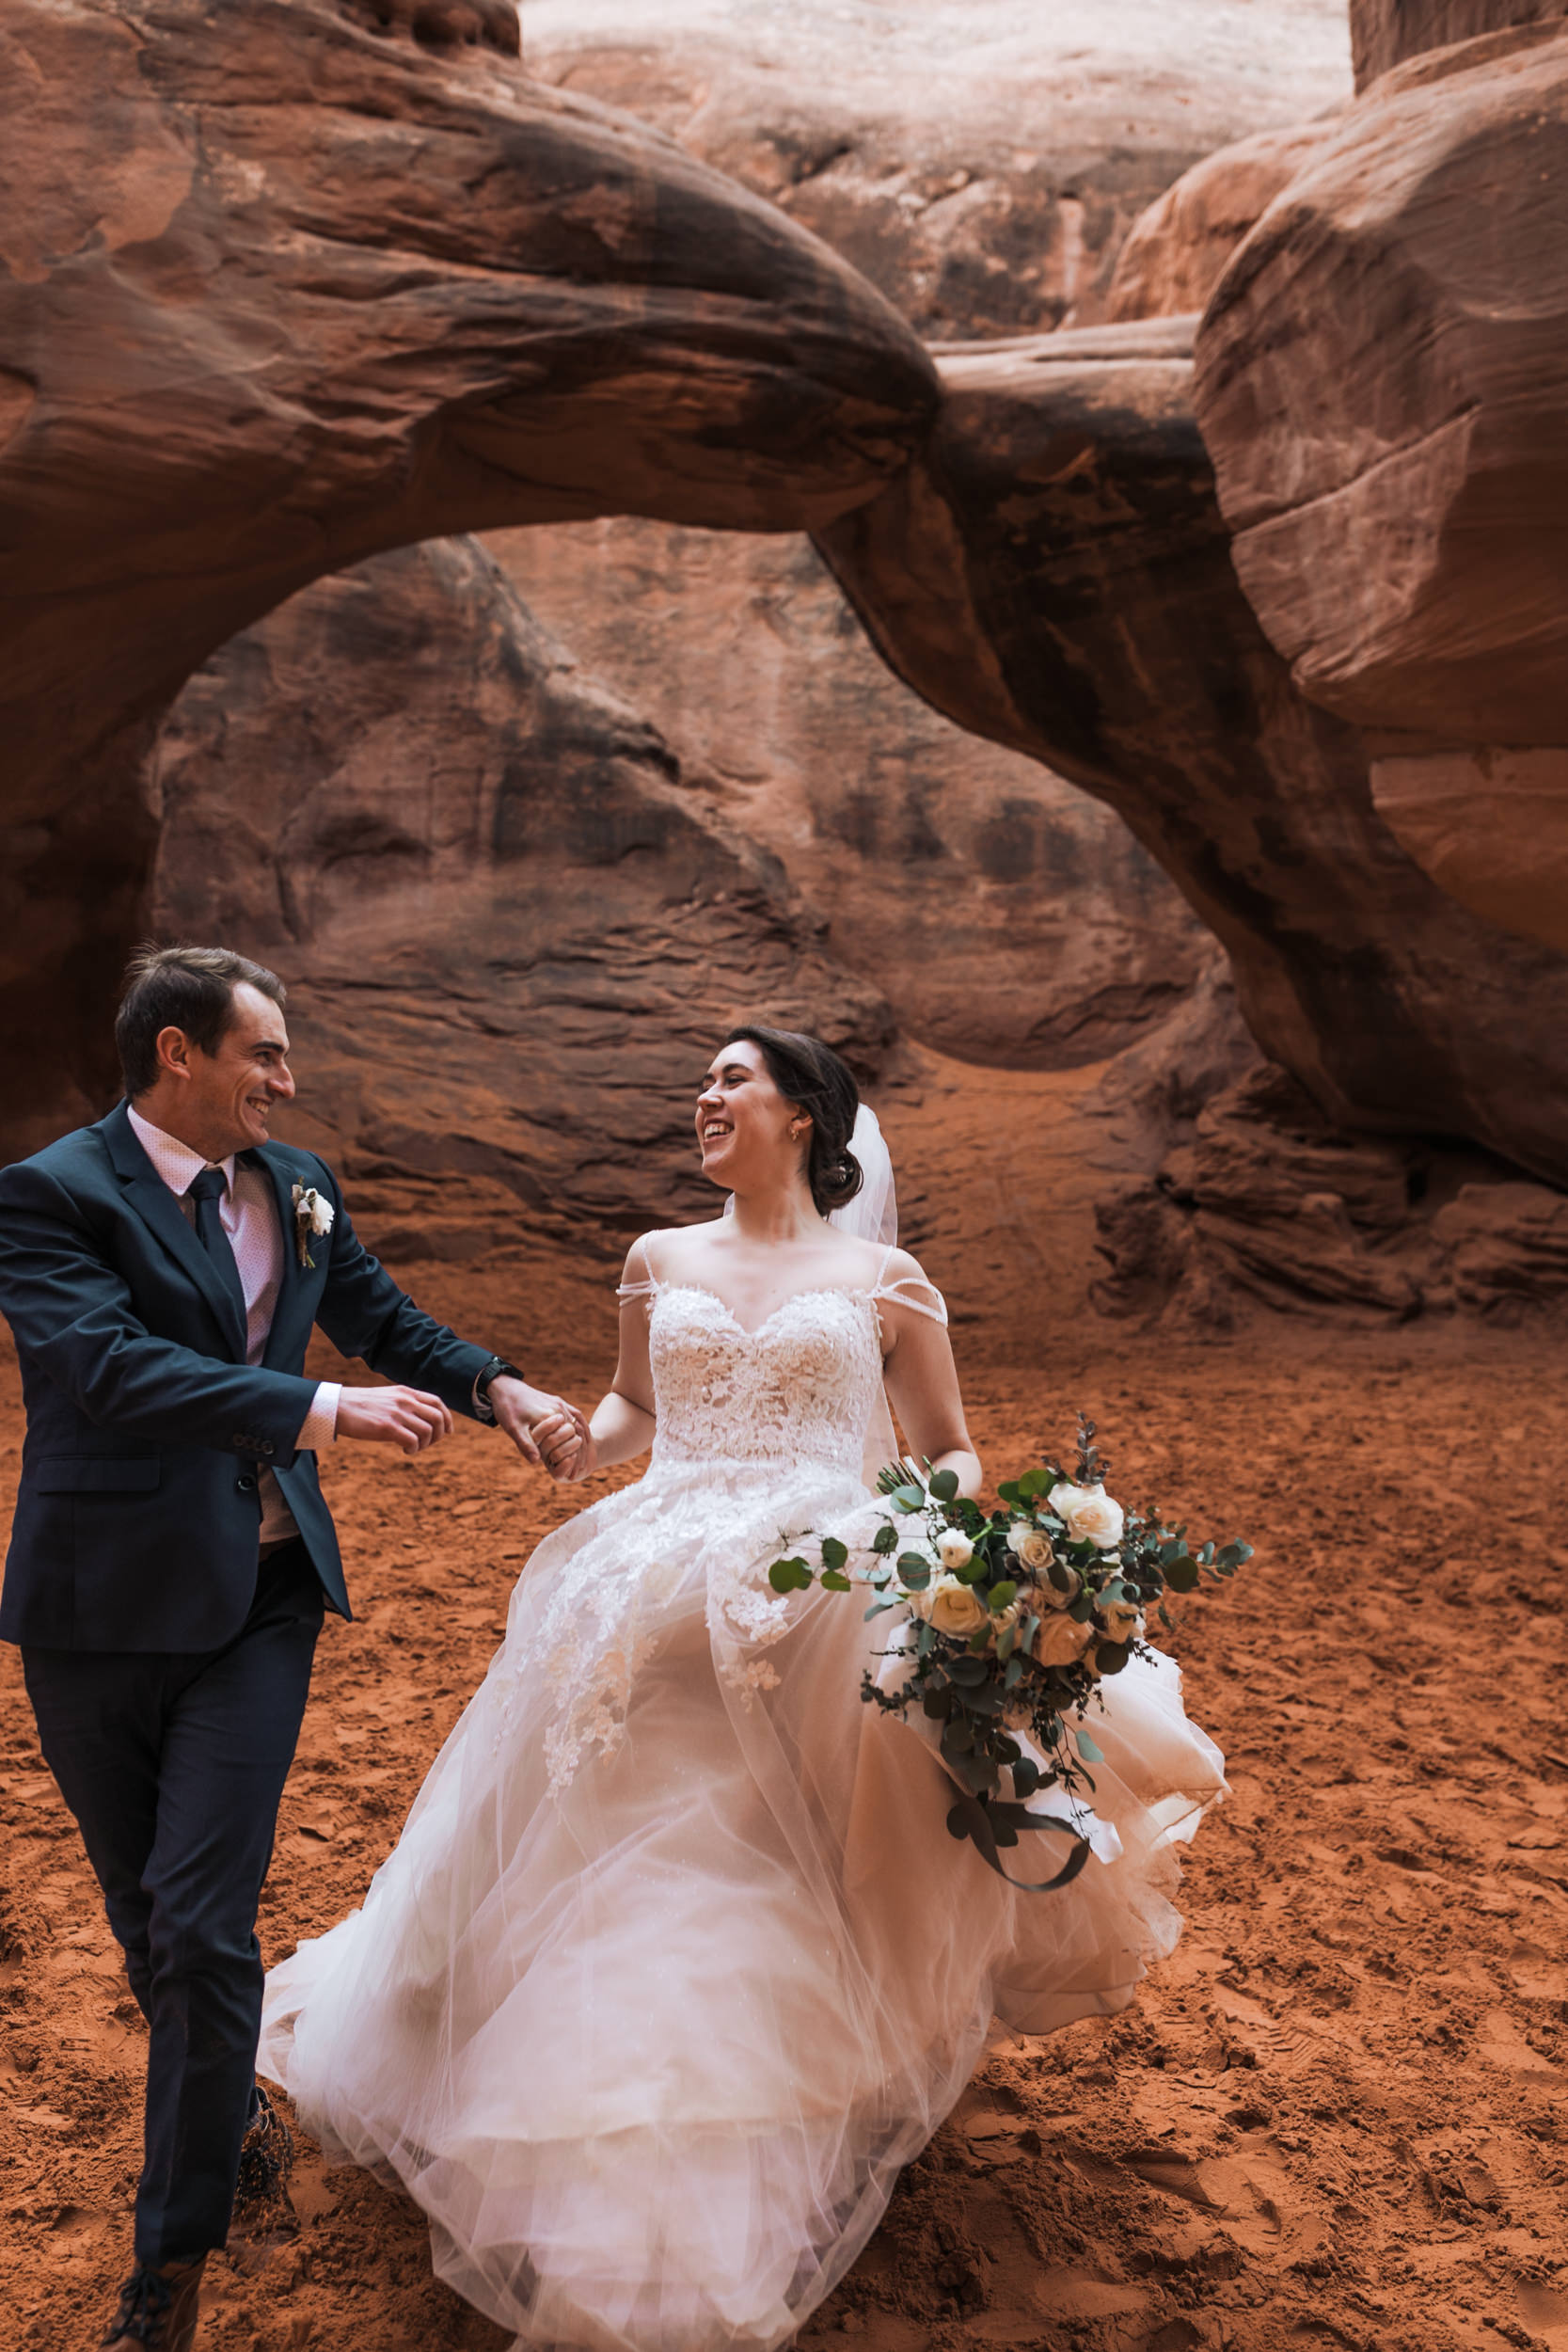 His suit was so cool and her wedding dress was absolutely stunning. Such a handsome couple hiking in Arches National Park together.